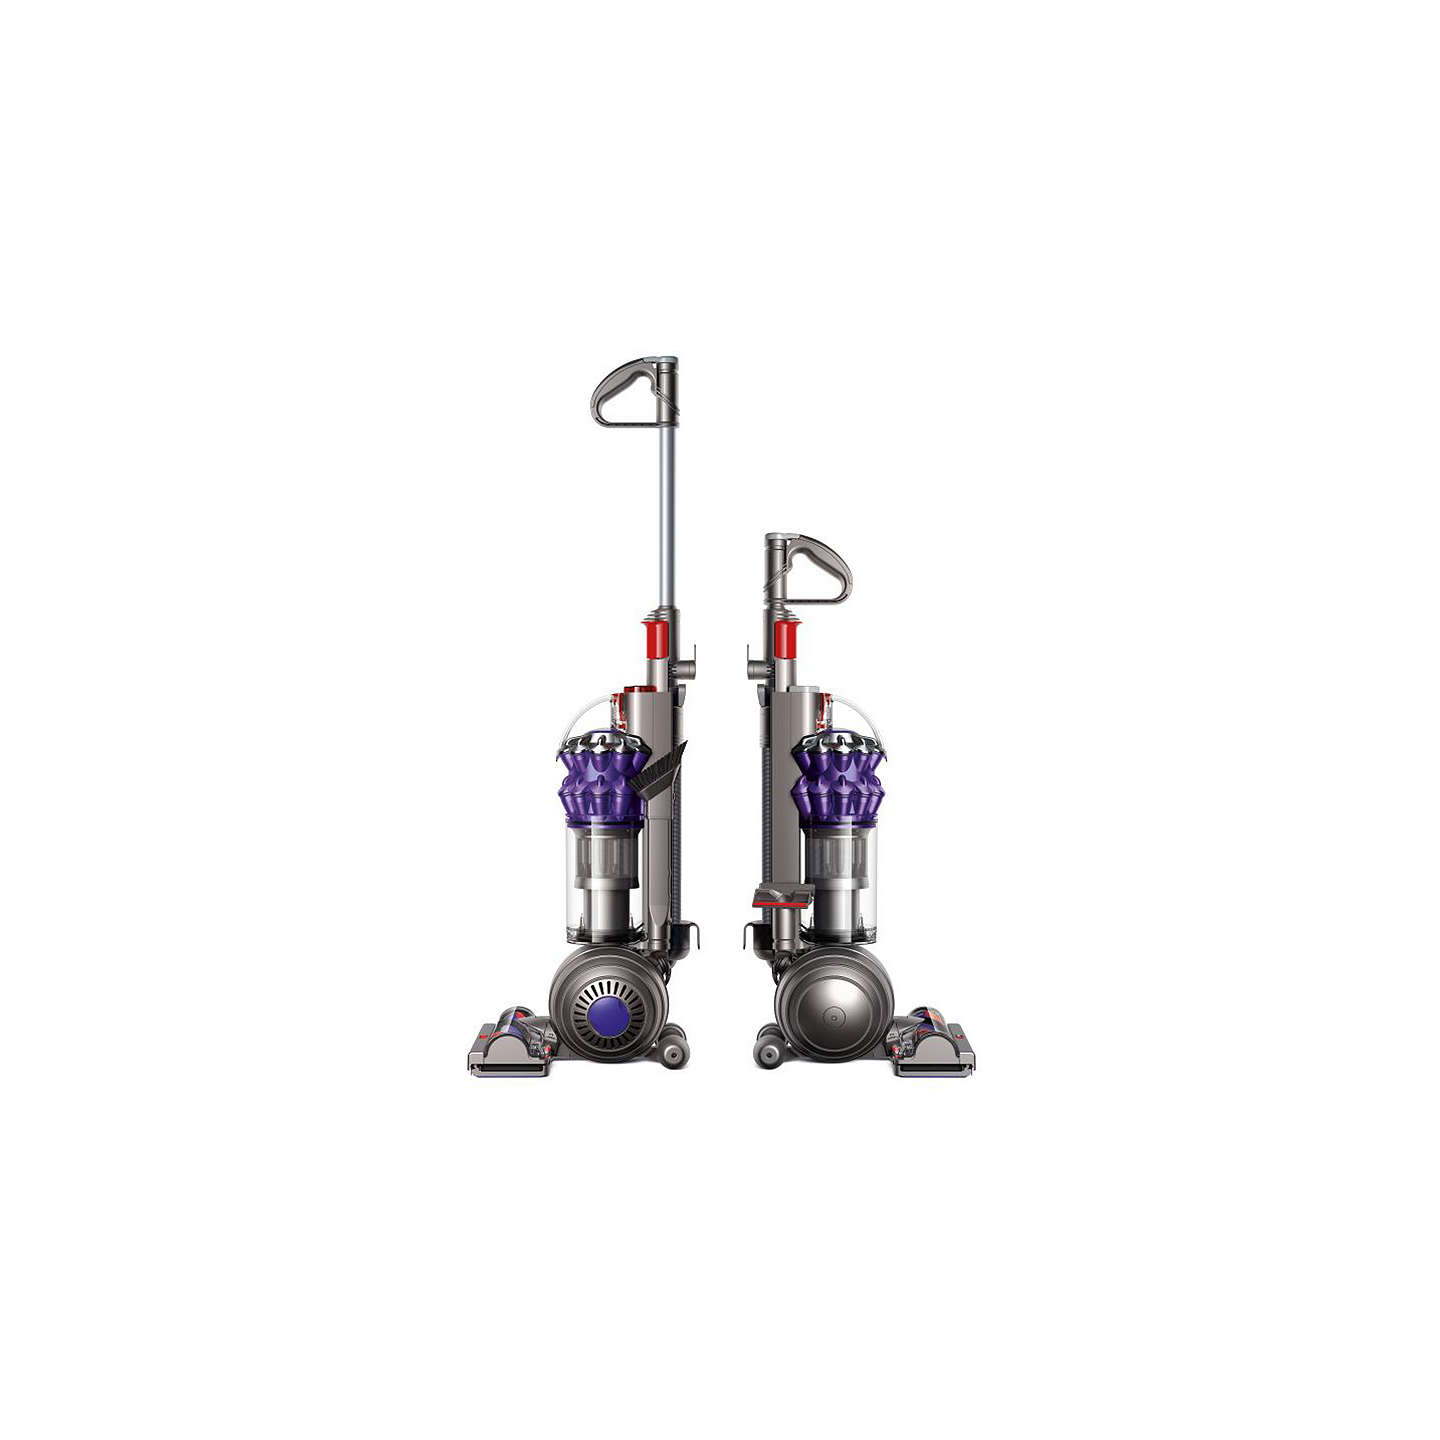 dyson small ball animal upright vacuum cleaner at john lewis